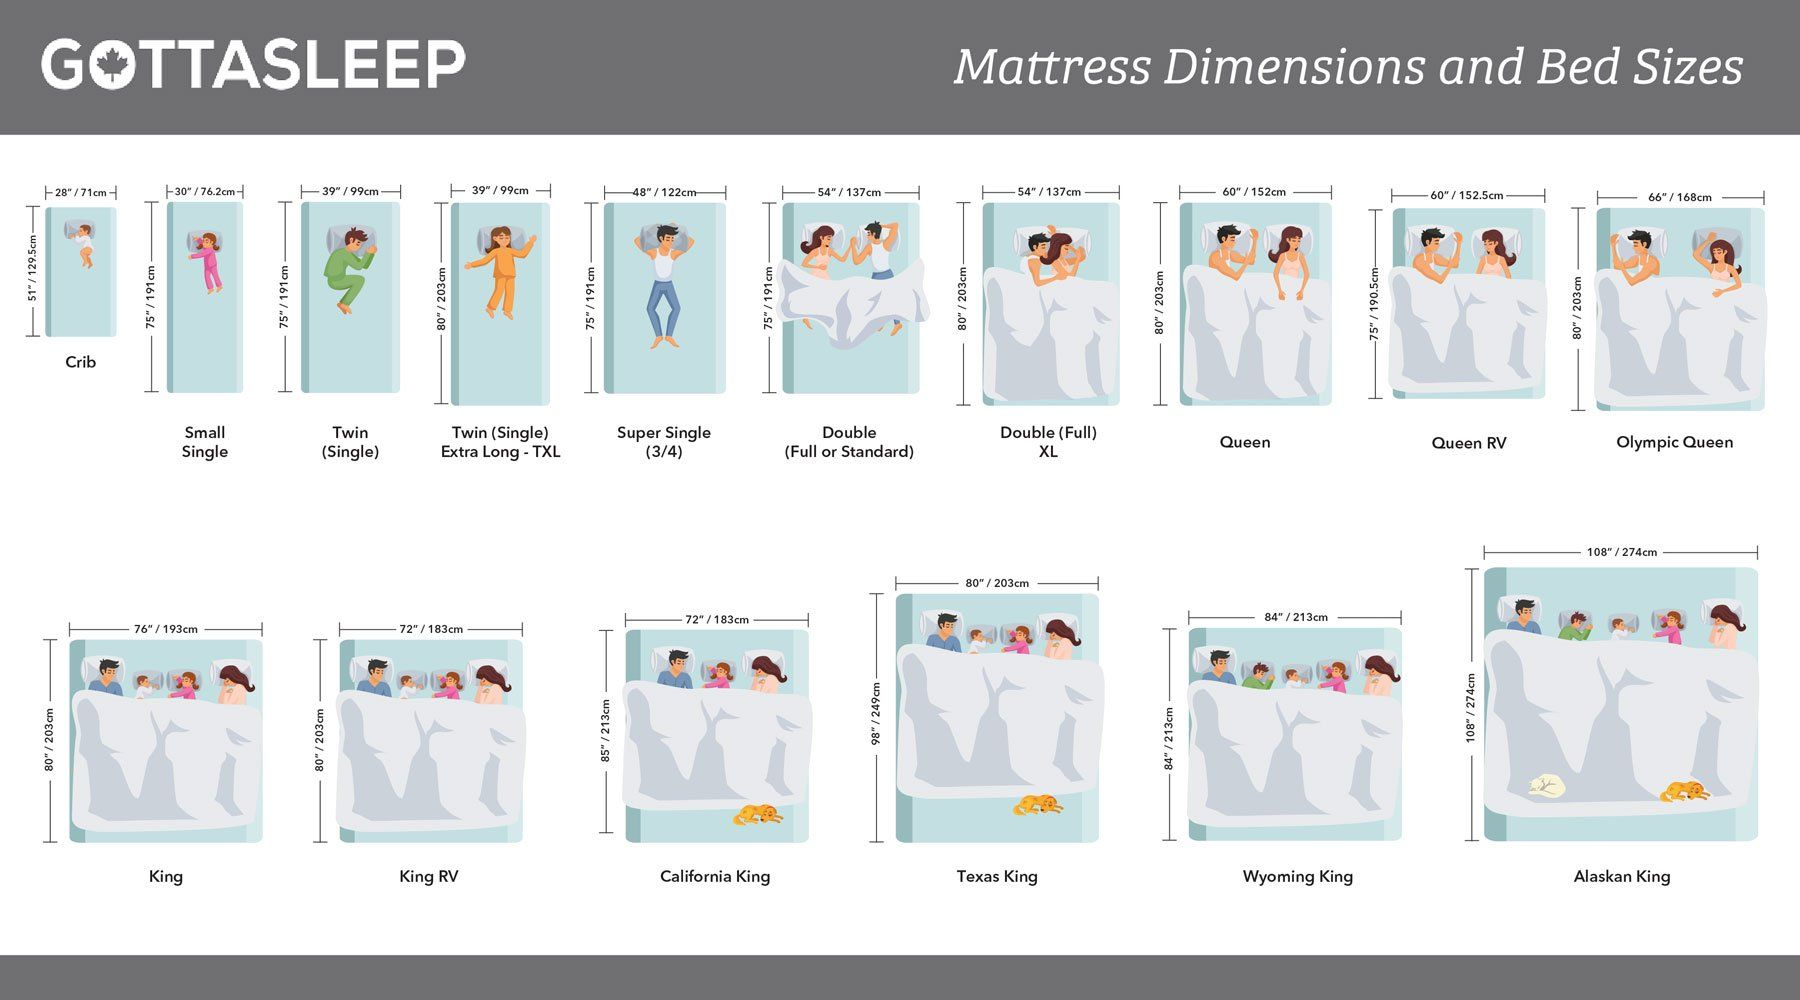 Take a look at our Mattress Sizes and Bed Size Dimensions